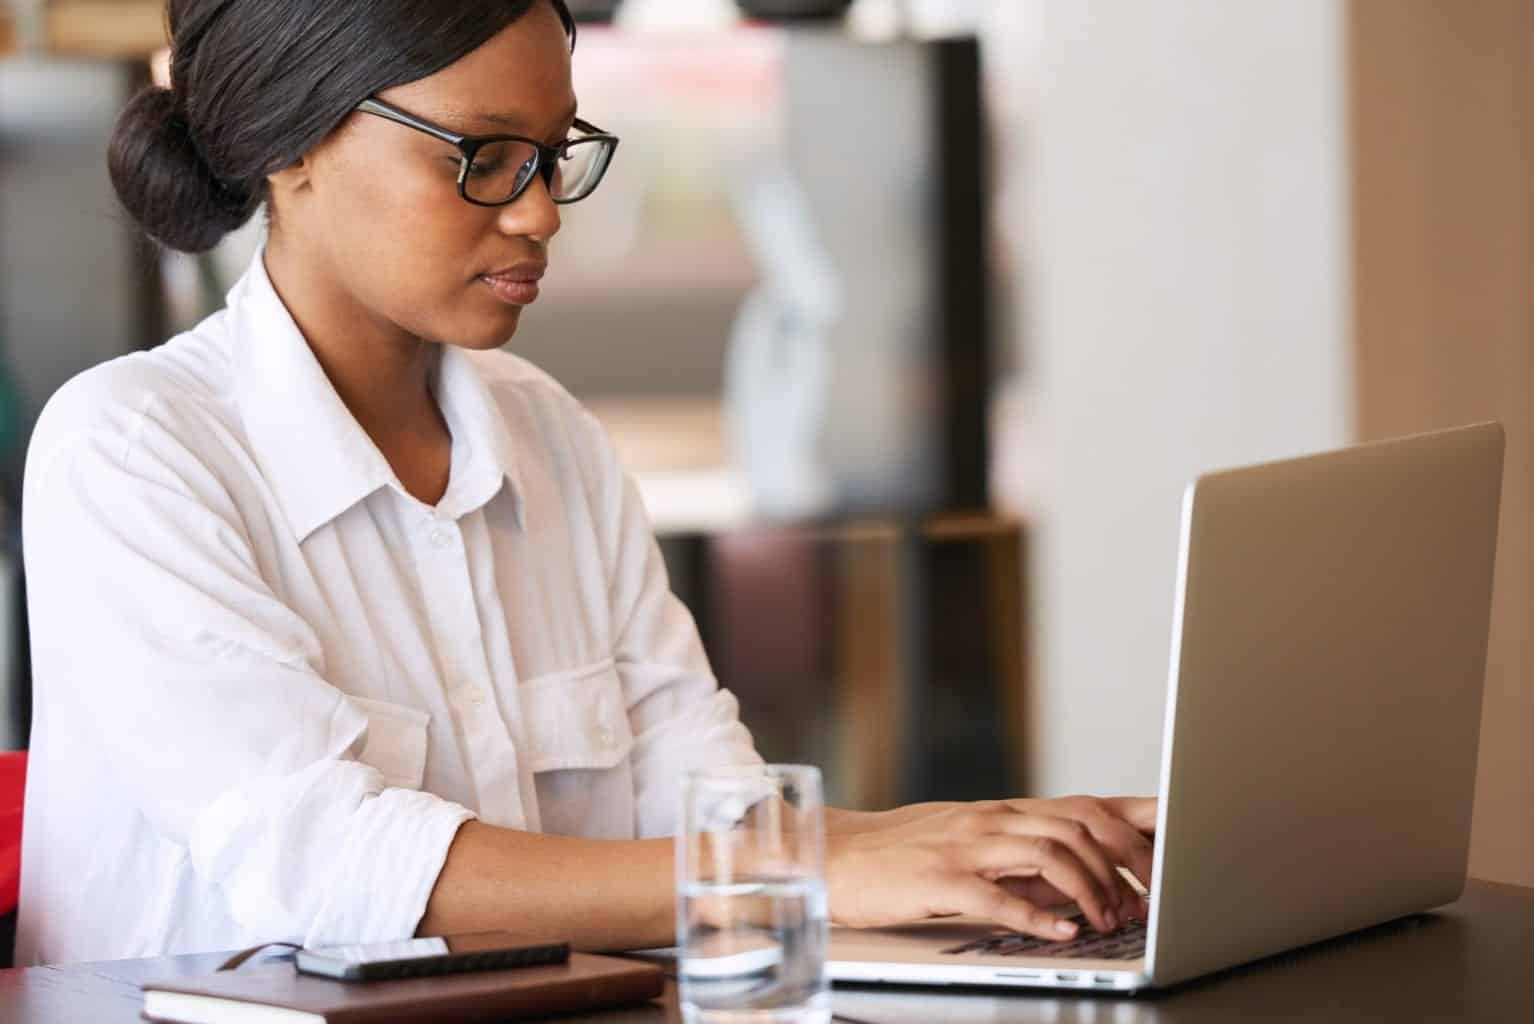 Woman wearing glasses and white shirt working on a laptop